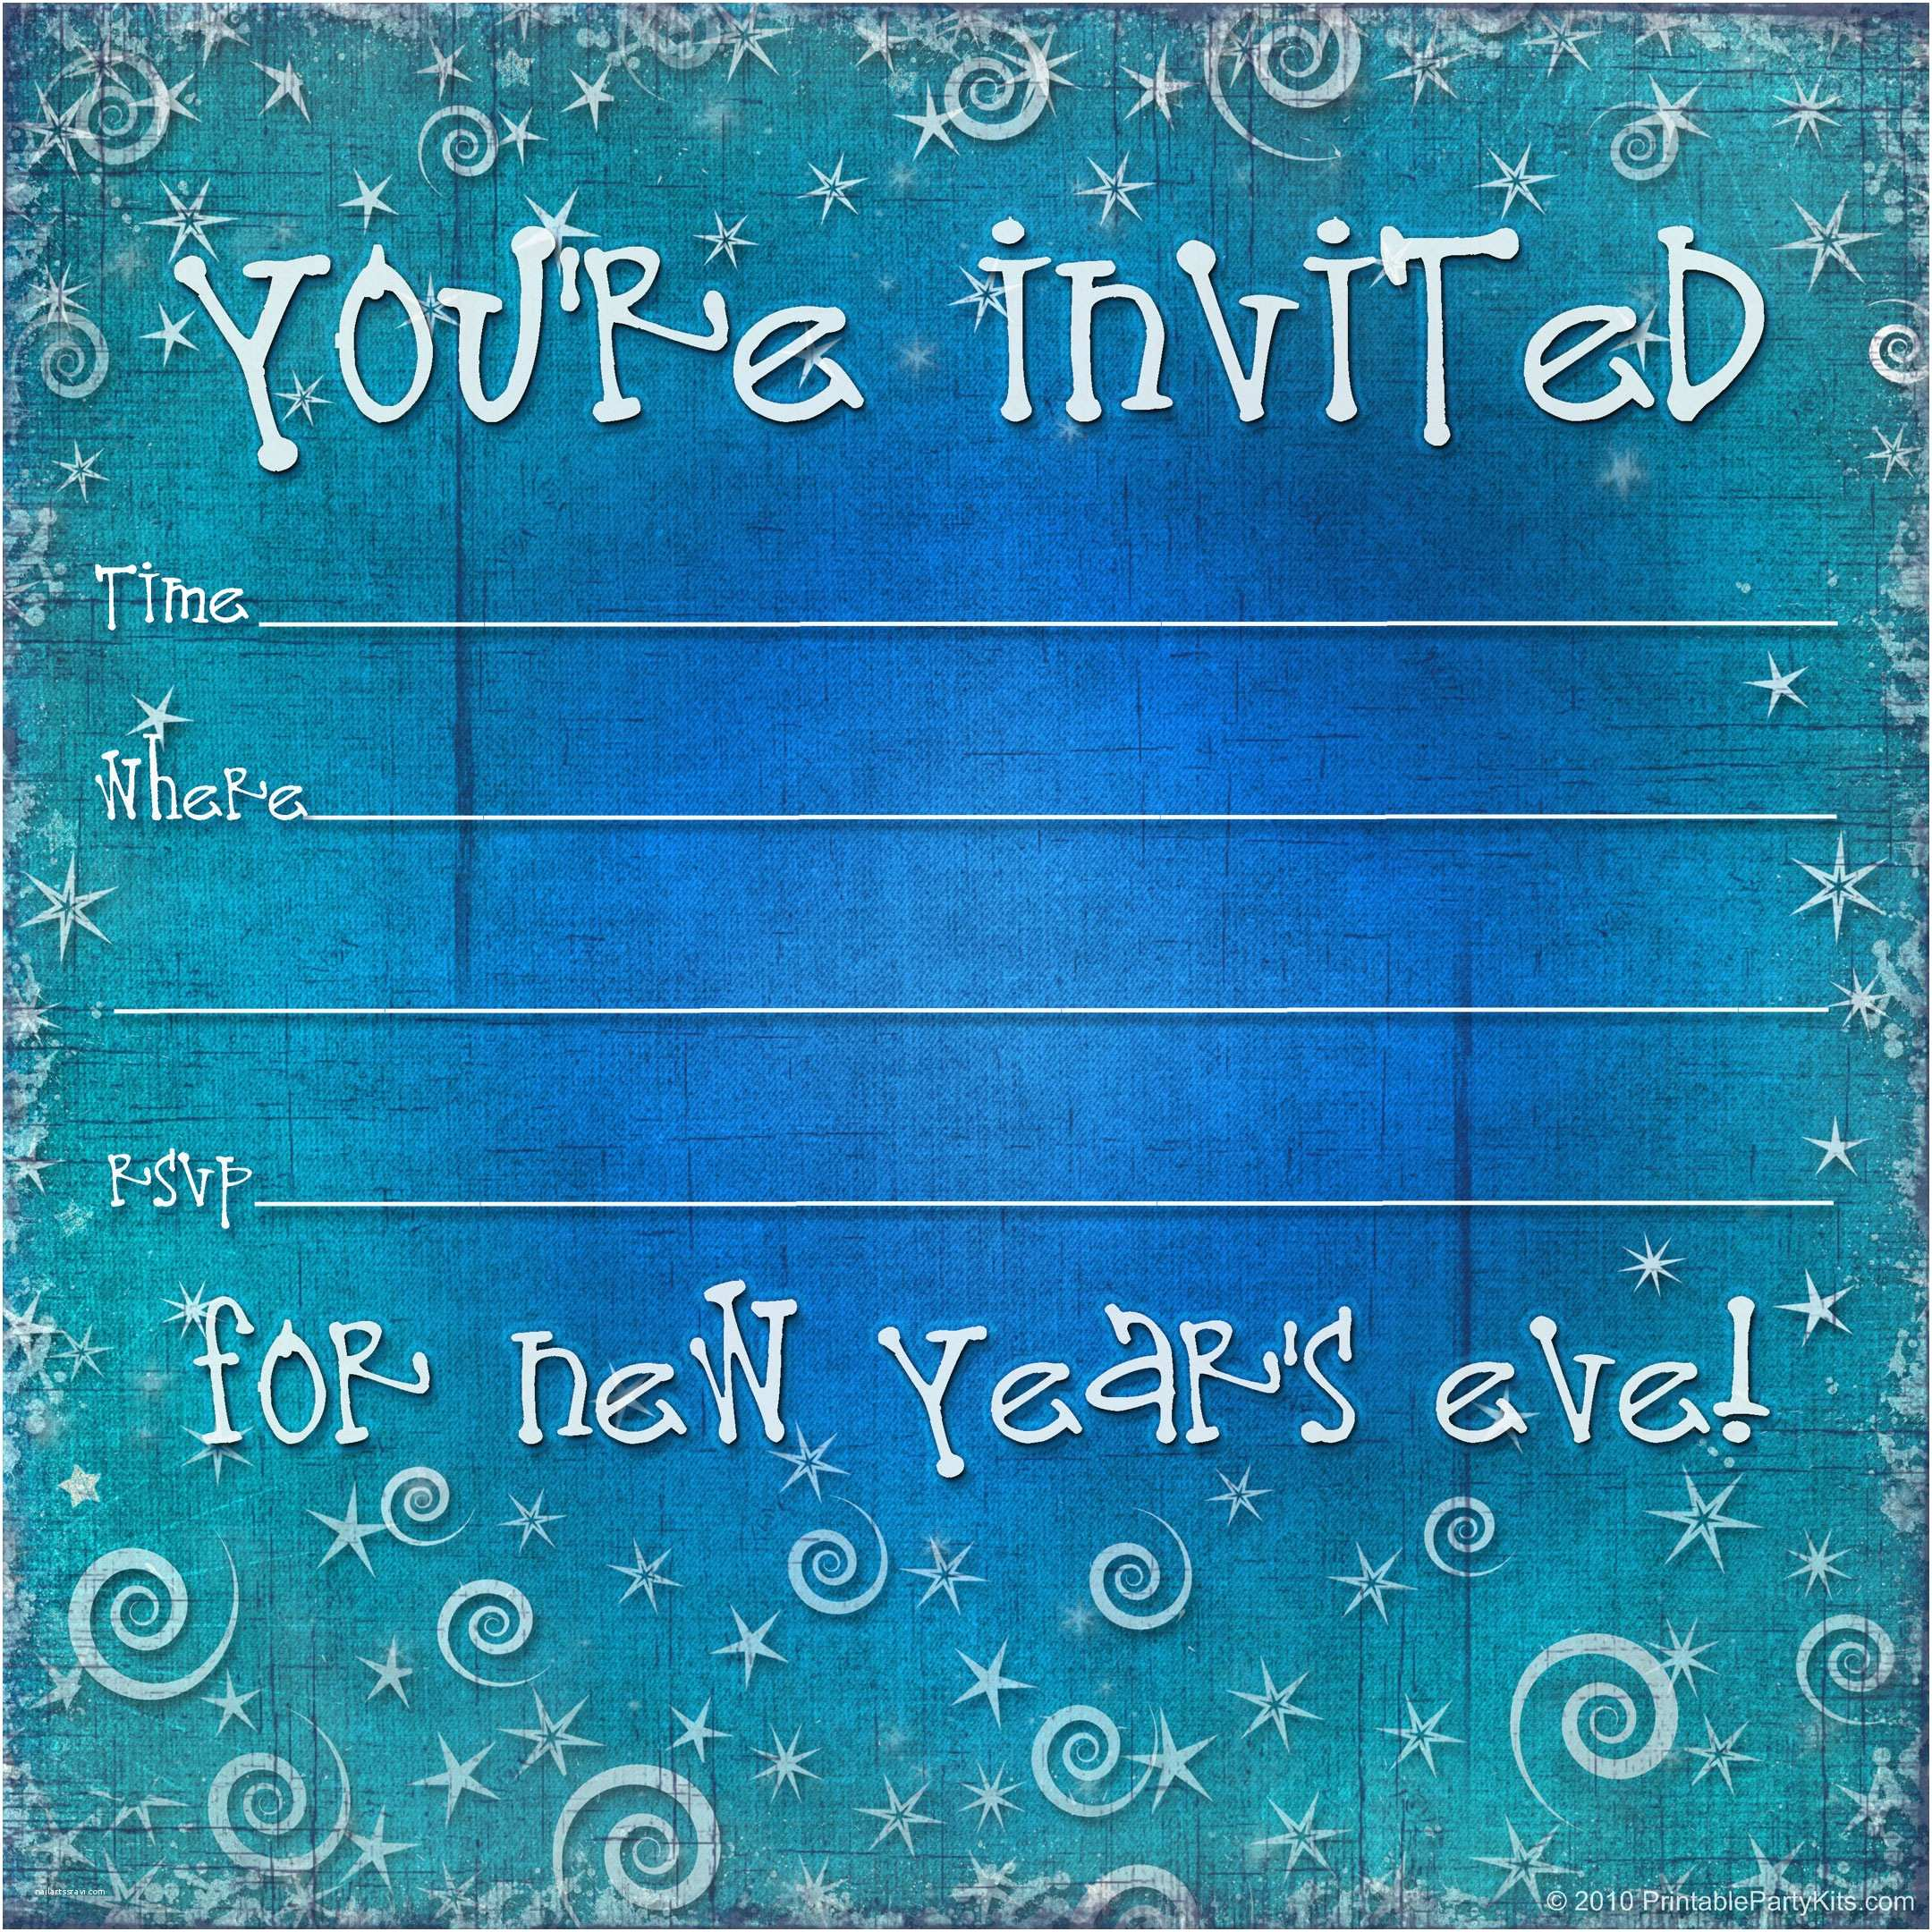 New Year Party Invitation Free Printable New Years Eve Party Invitation Template